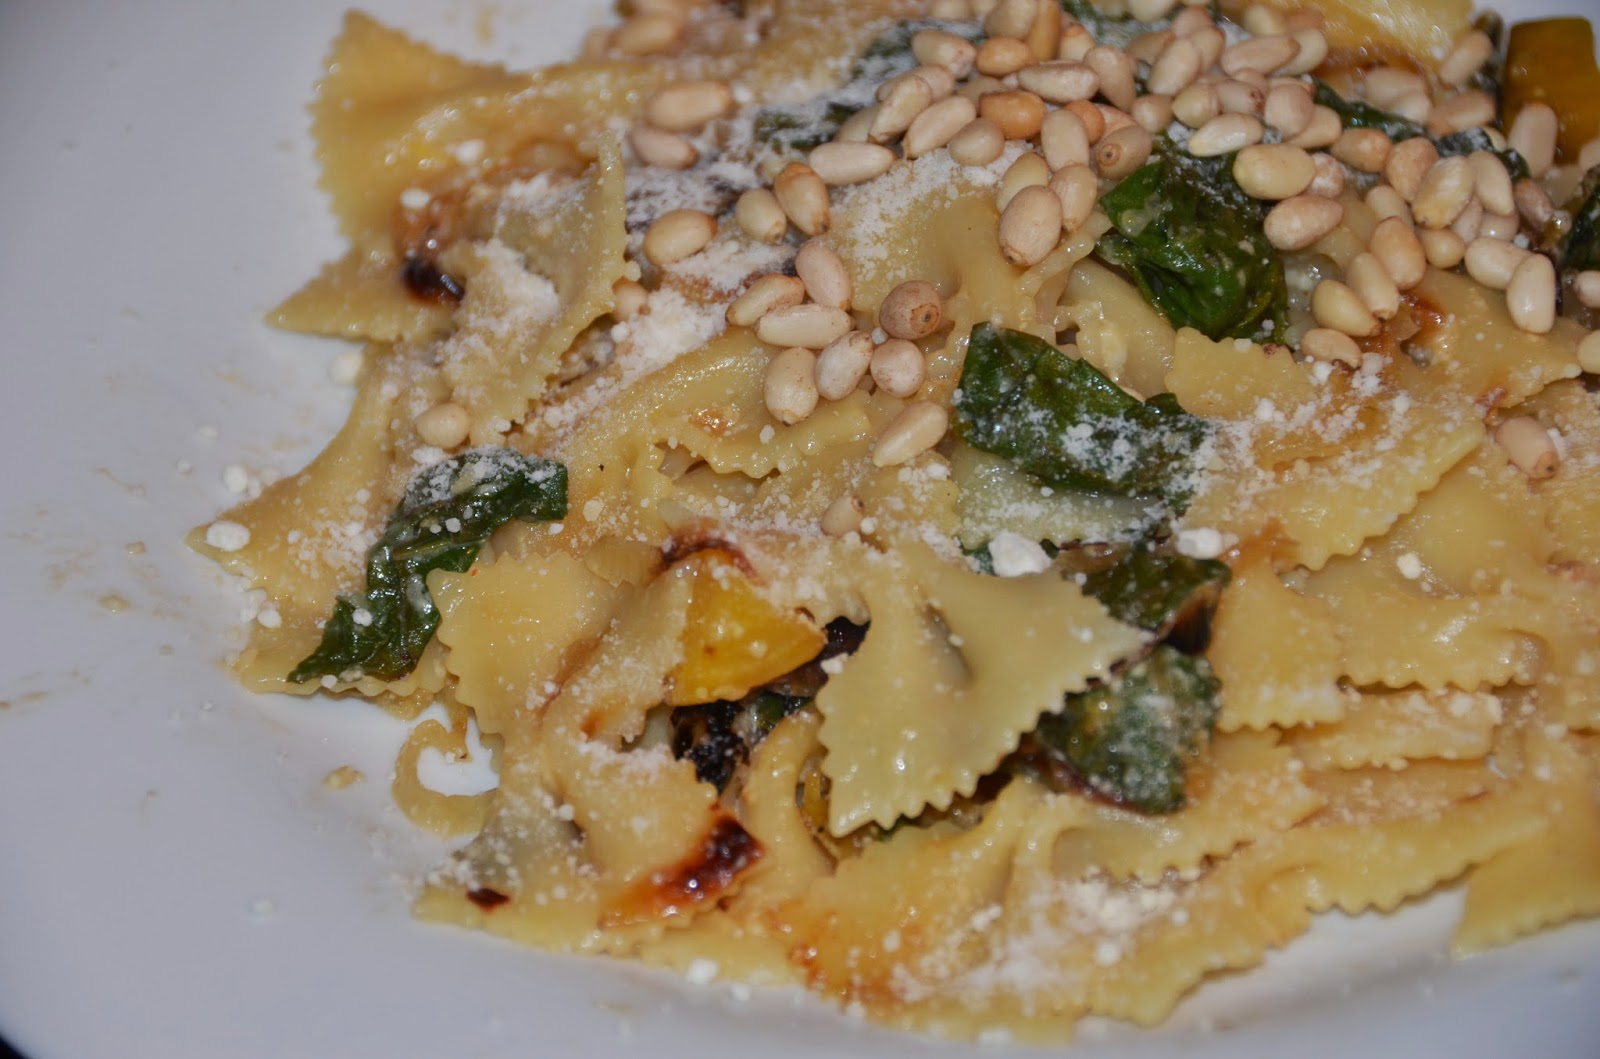 ... golden beets and pine nuts farfalle with golden beets and pine nuts